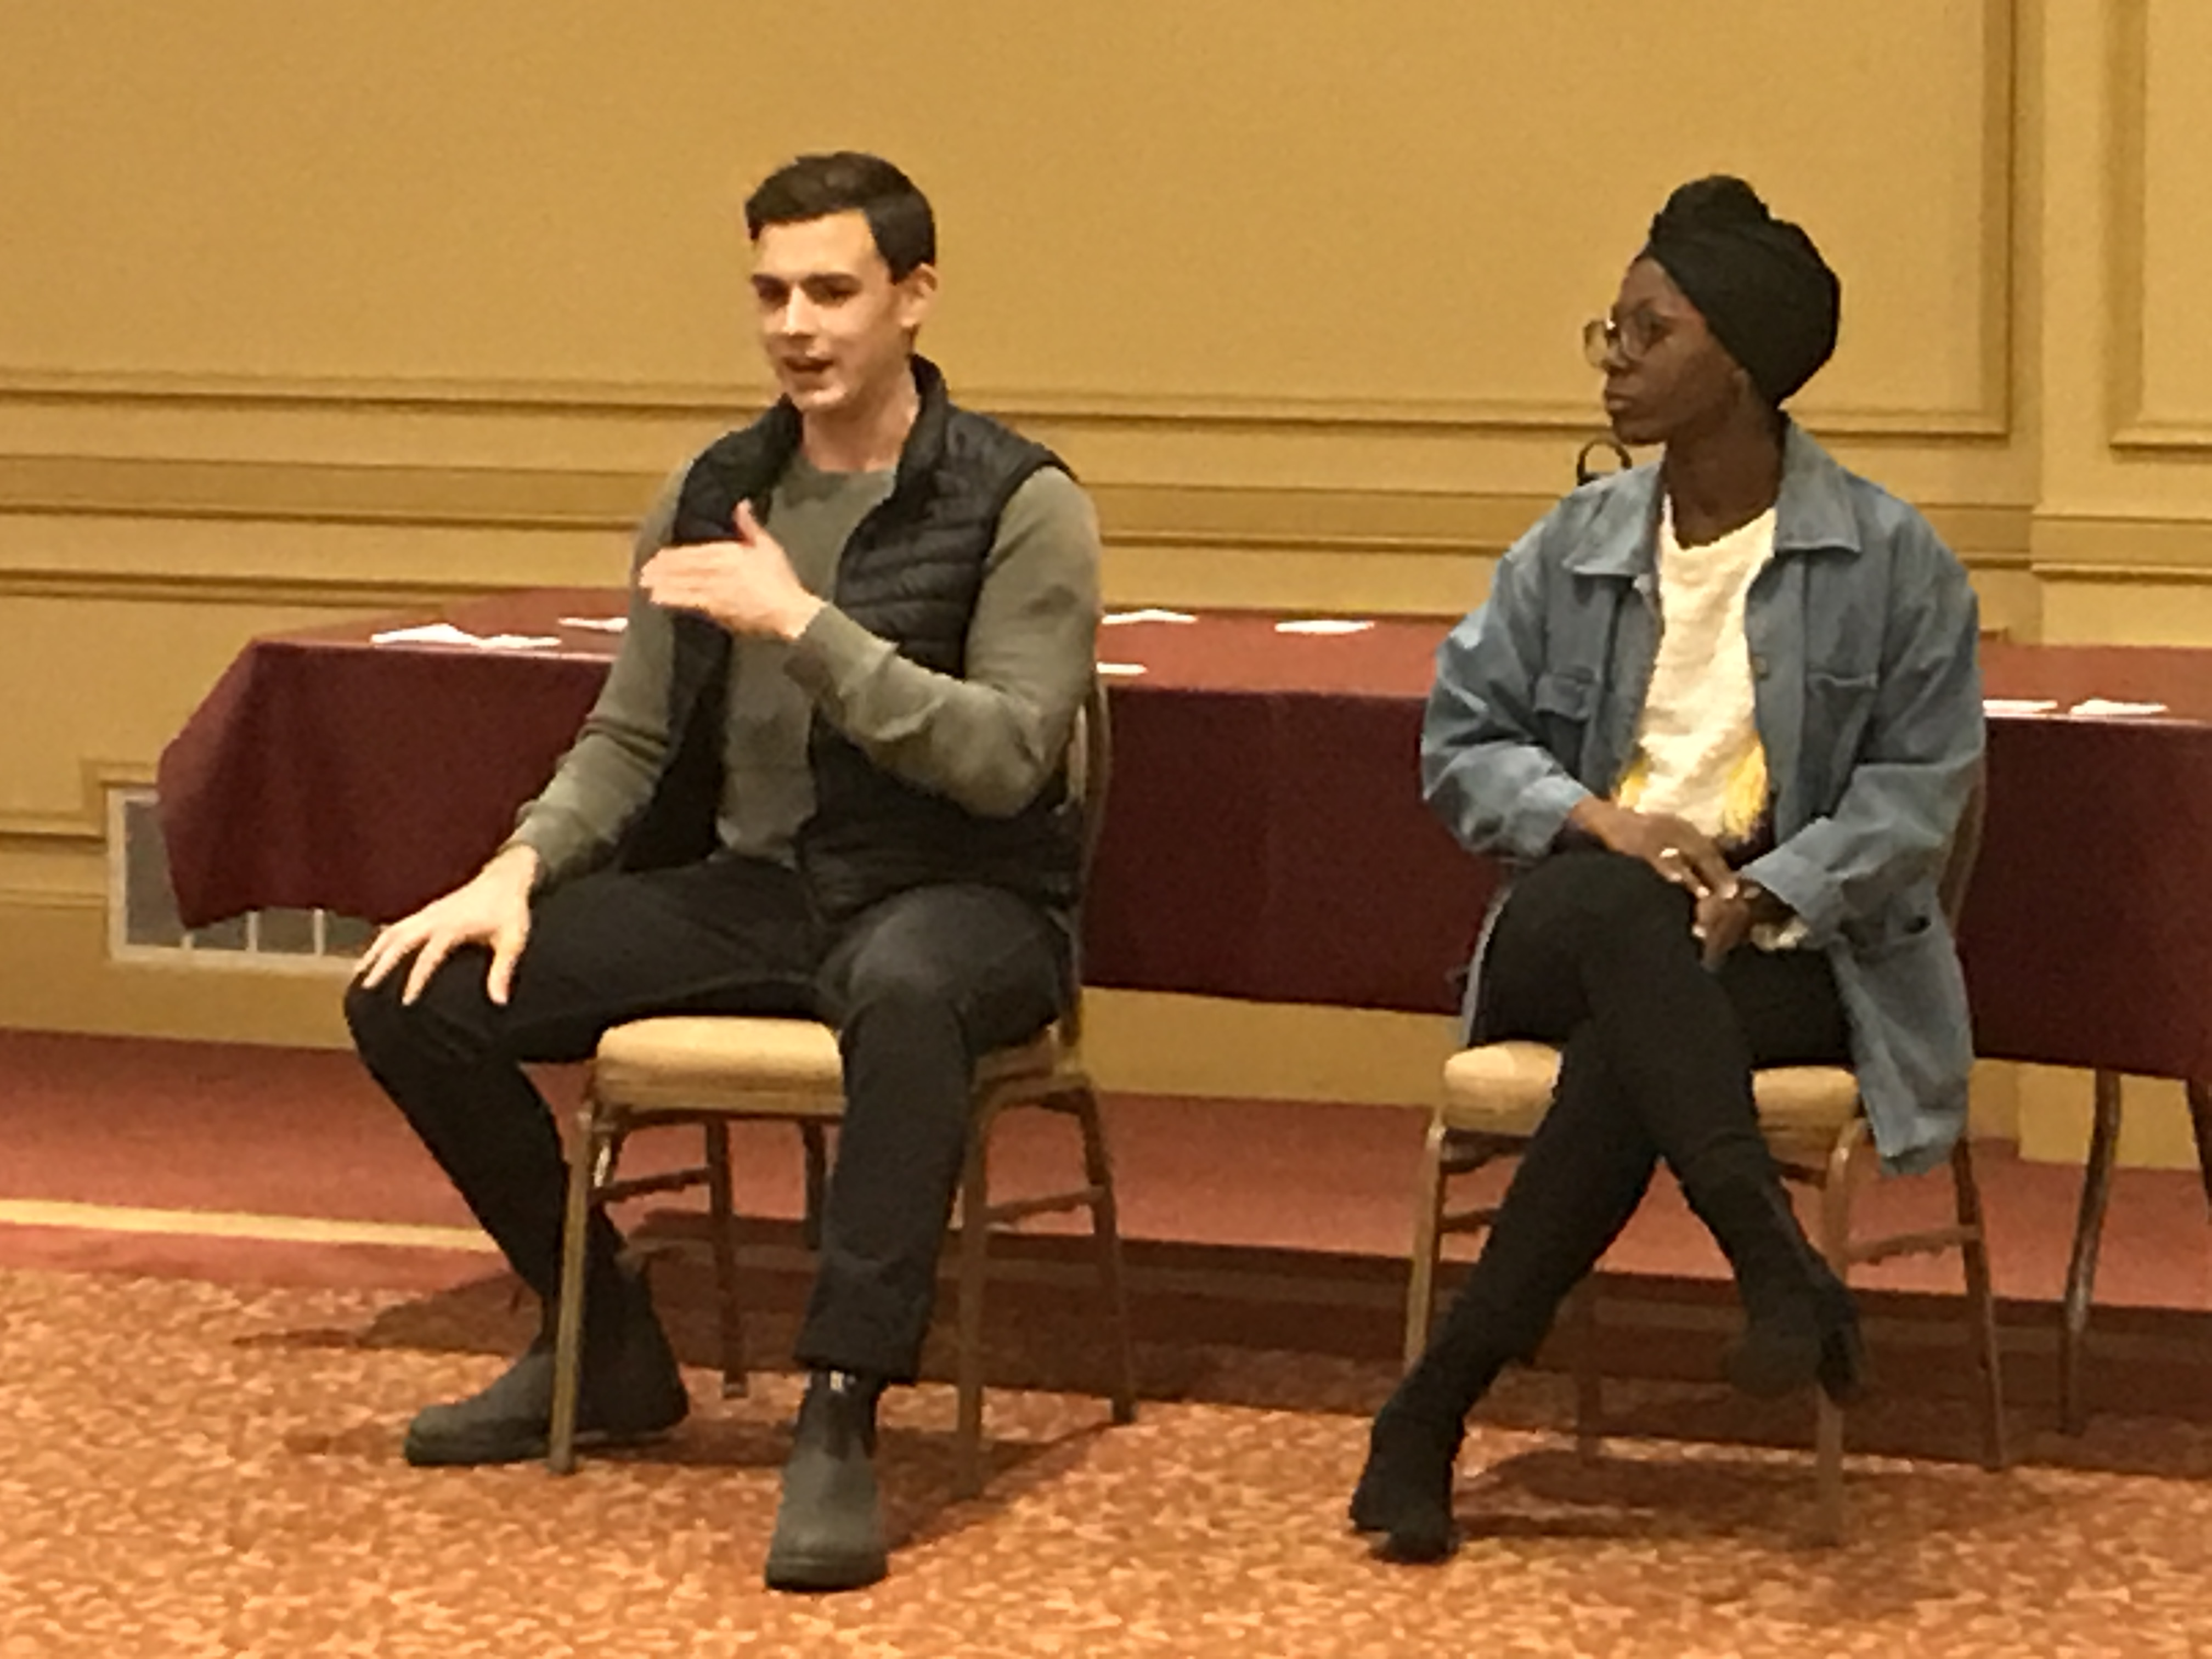 BROADWAY UTICA'S YOUTH AMBASSADORS HEAR FROM CAST MEMBERS